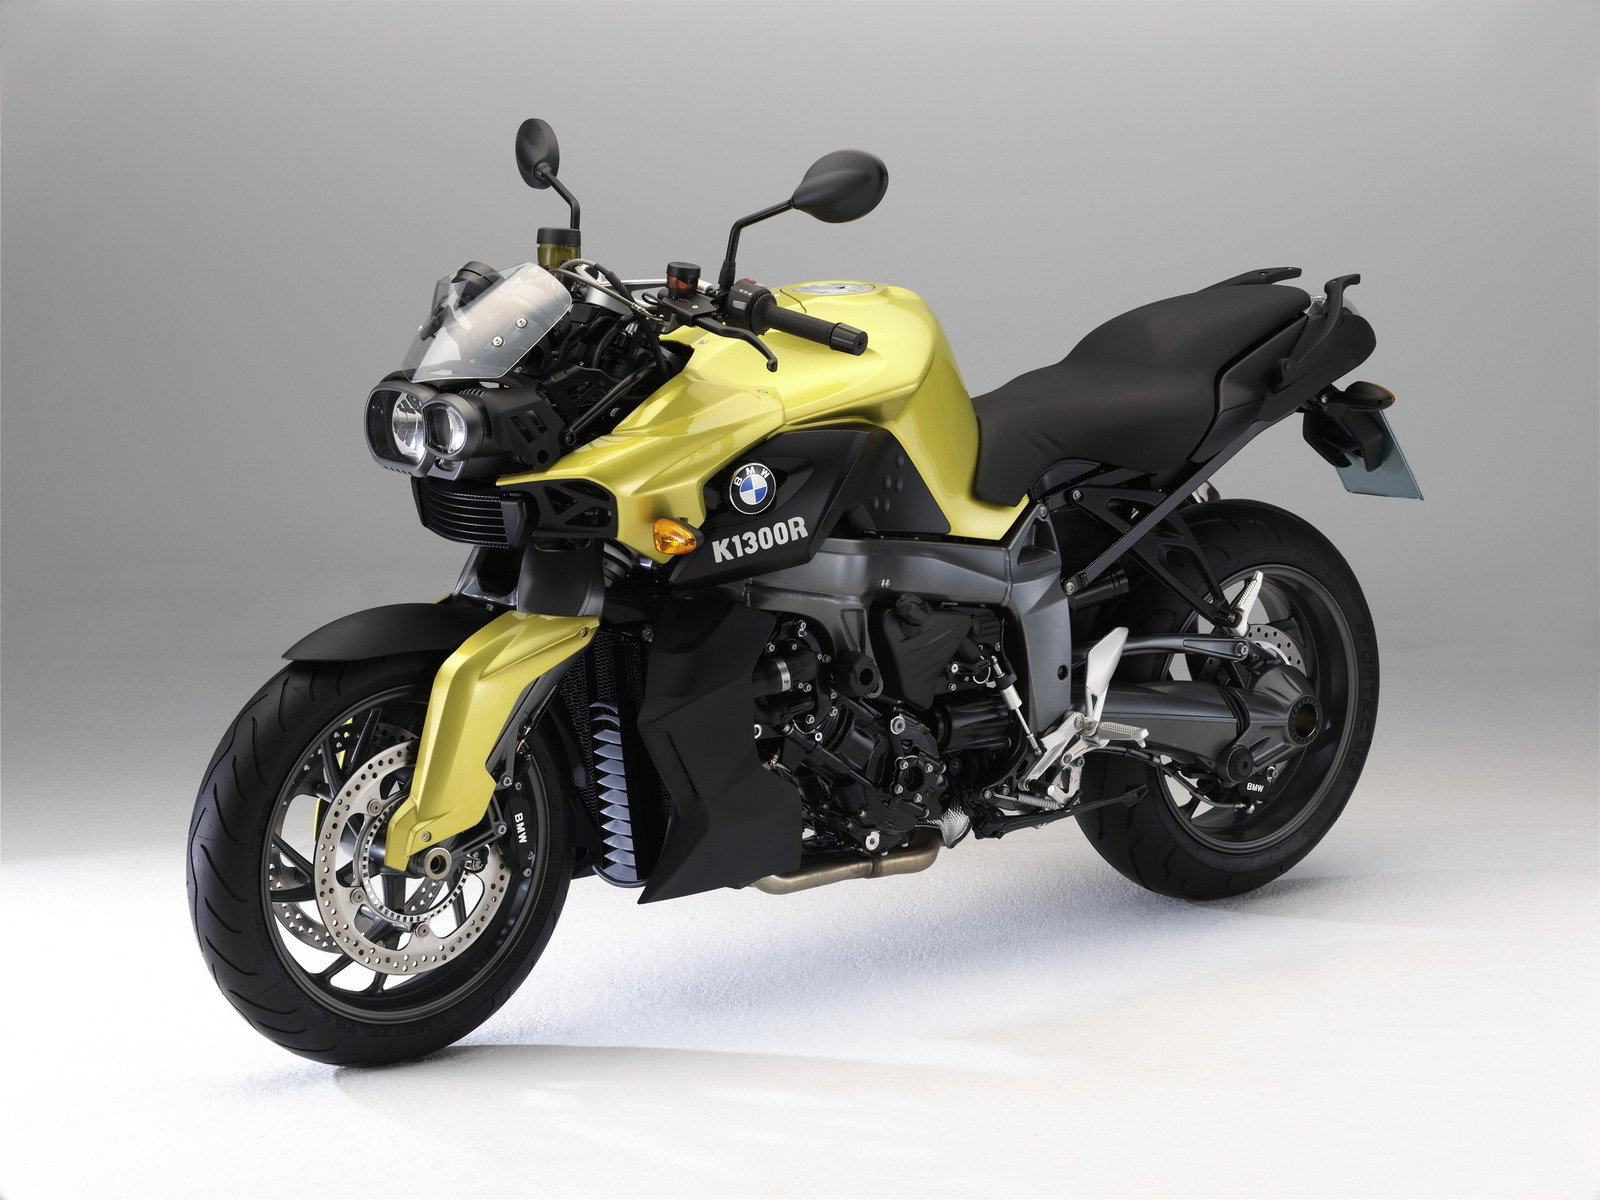 bmw f 800 st touring and k 1300 r dynamic special editions picture 372740 motorcycle review. Black Bedroom Furniture Sets. Home Design Ideas